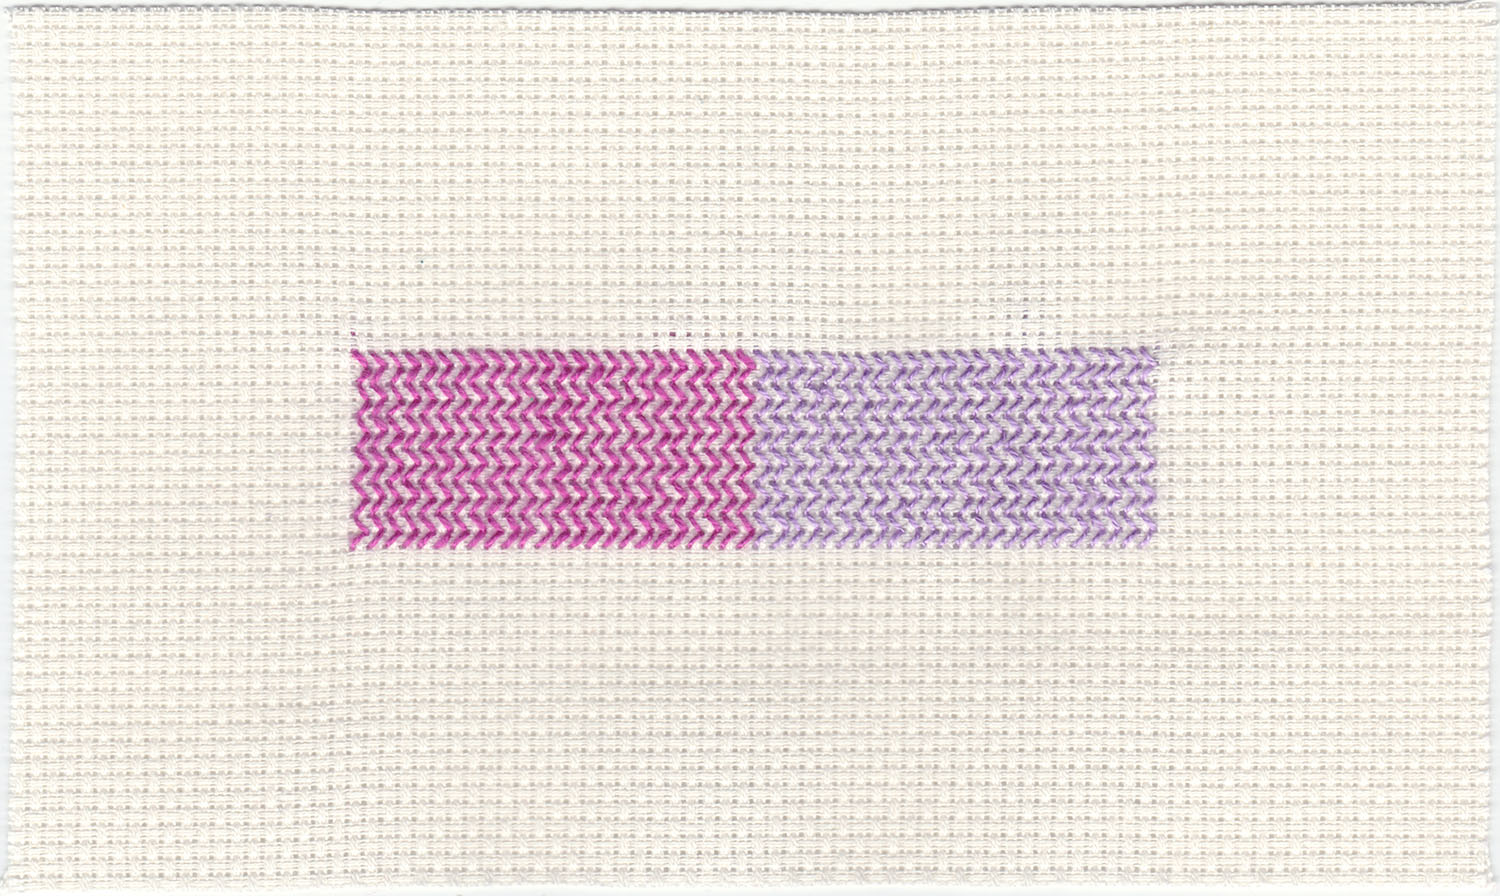 Colour Study in 576 Diagonal Stitches_5A_web.jpg